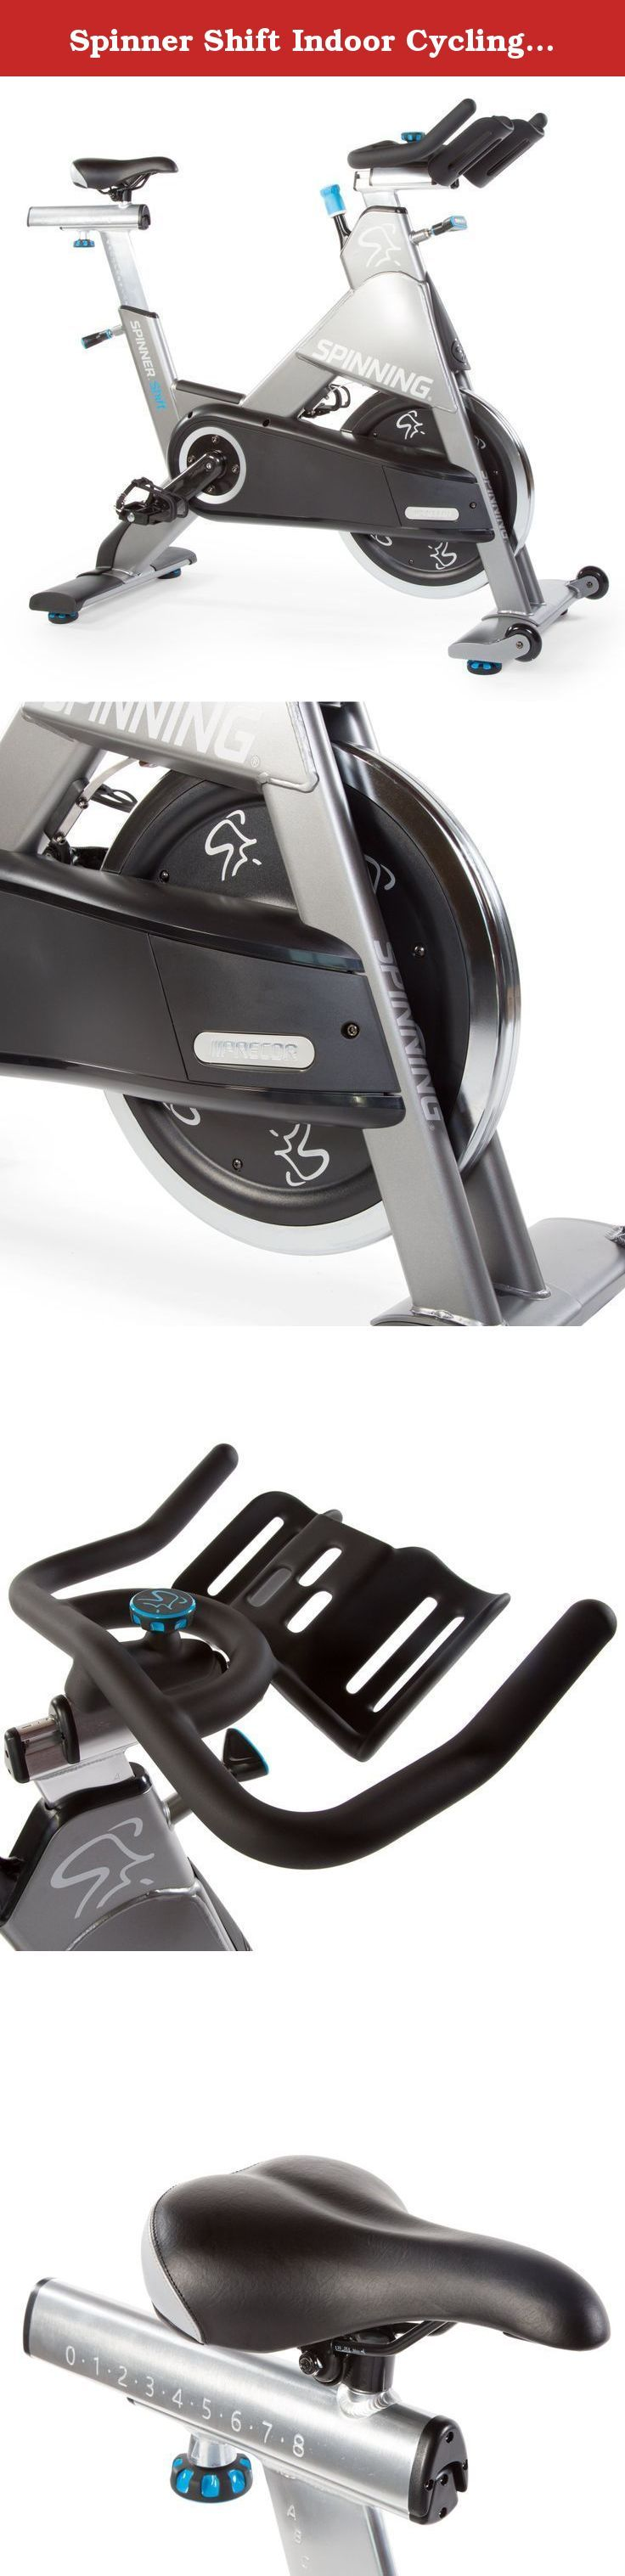 Spinner Shift Indoor Cycling Bike Chain Drive, Charcoal. Spinner shift is built to be a workhorse for your facility. The spinner shift combines a heavier steel frame with the same Great adjustment options (like the fore/aft handlebar adjustments) as the spinner Rally. It is a Great choice for facilities with 10 or more classes per week seeking to offer superior indoor cycle classes and rides. We sweat over every detail from the bike design and performance to meet our high standards.